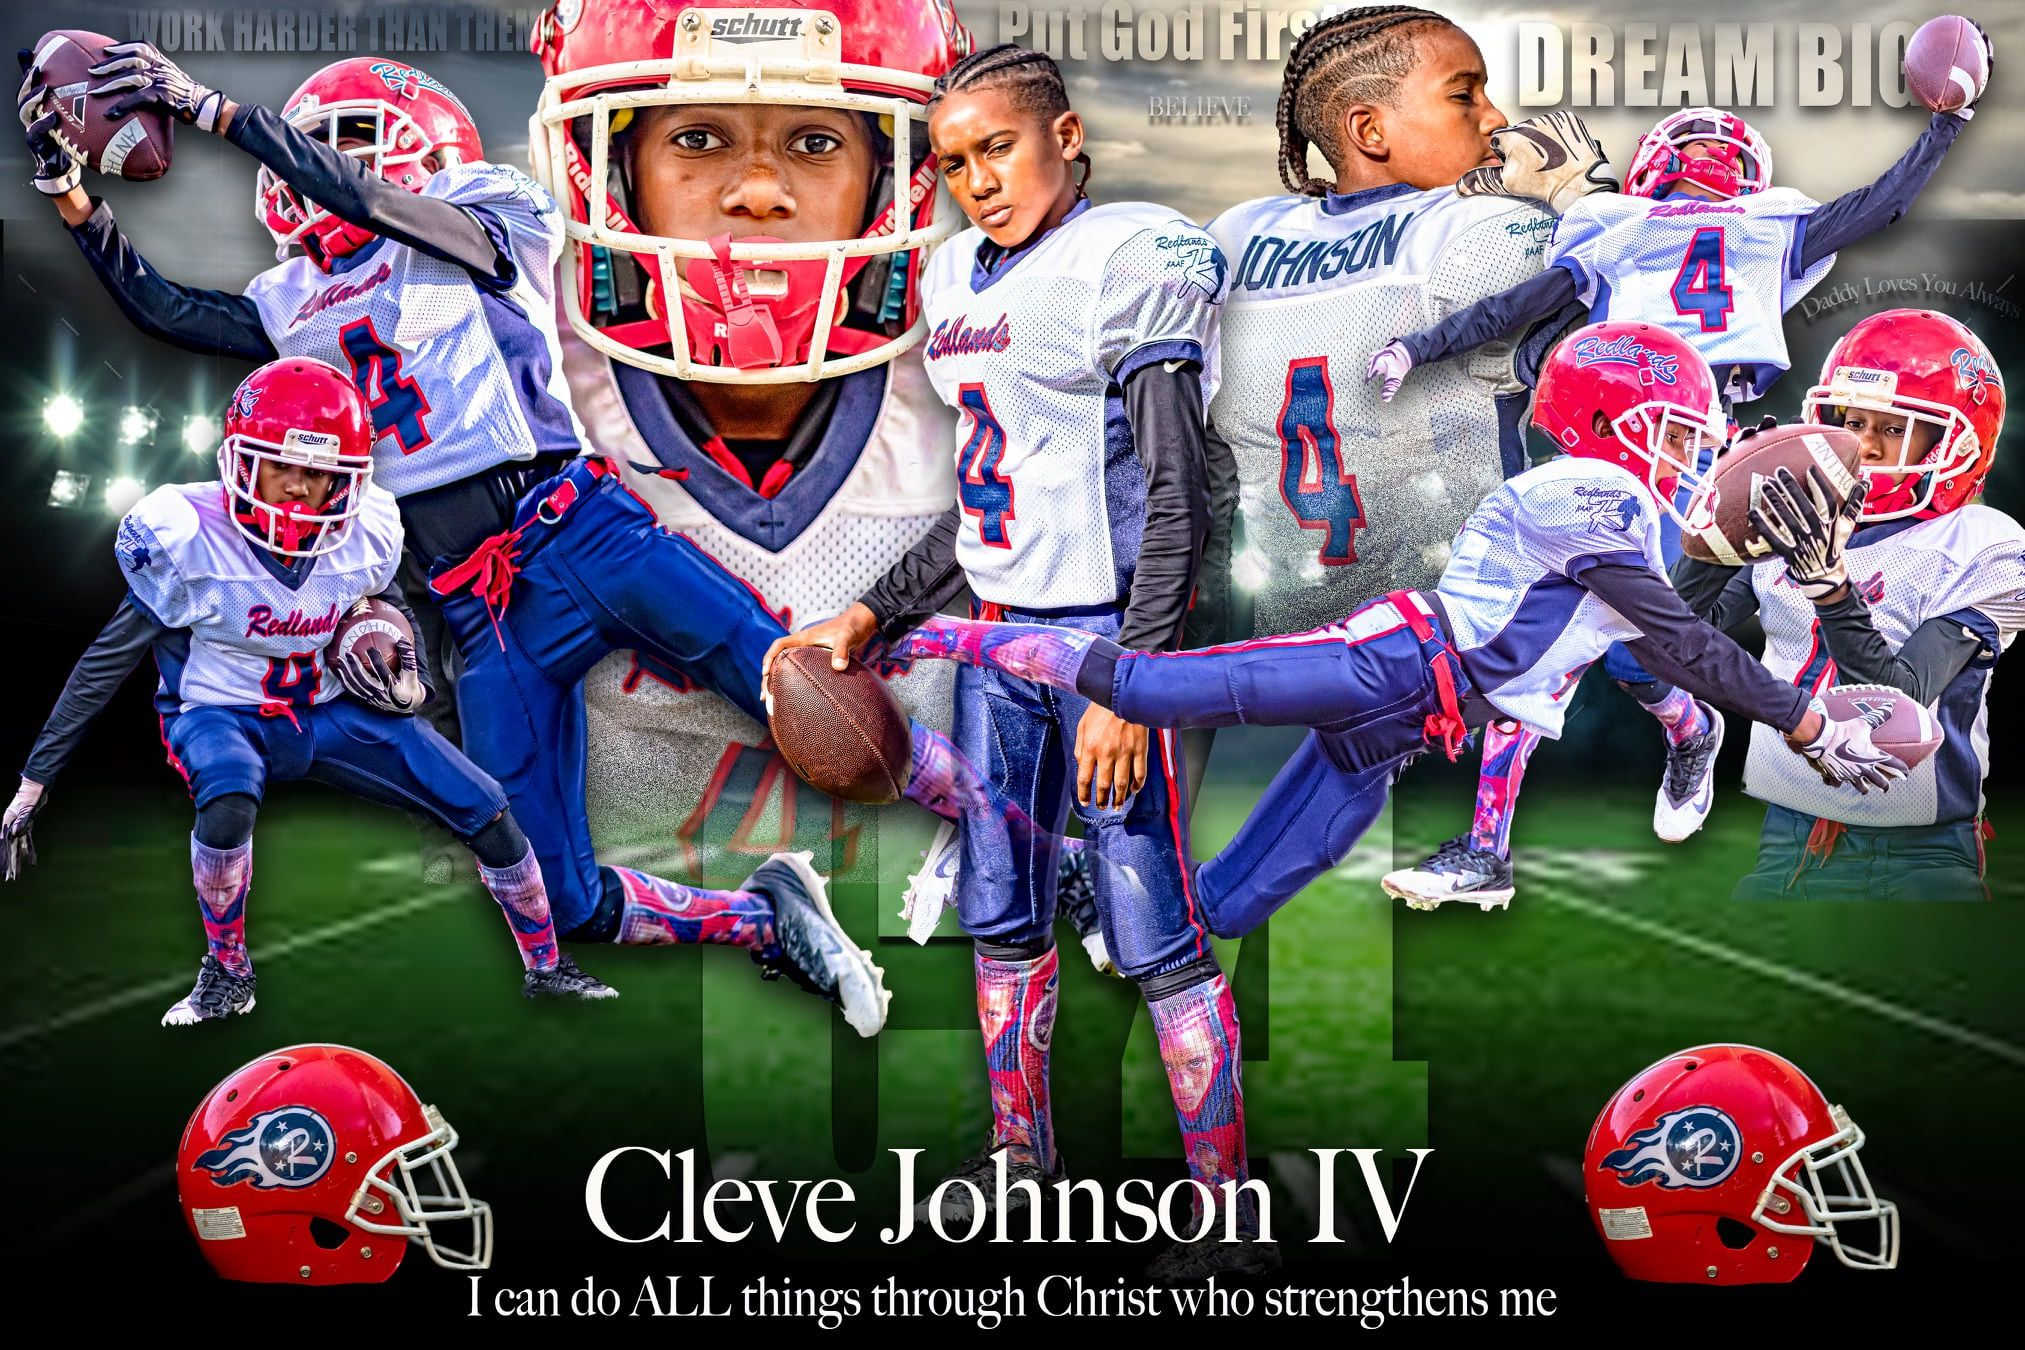 This Is A Canvas Collage Of A Youth Football Player With Images